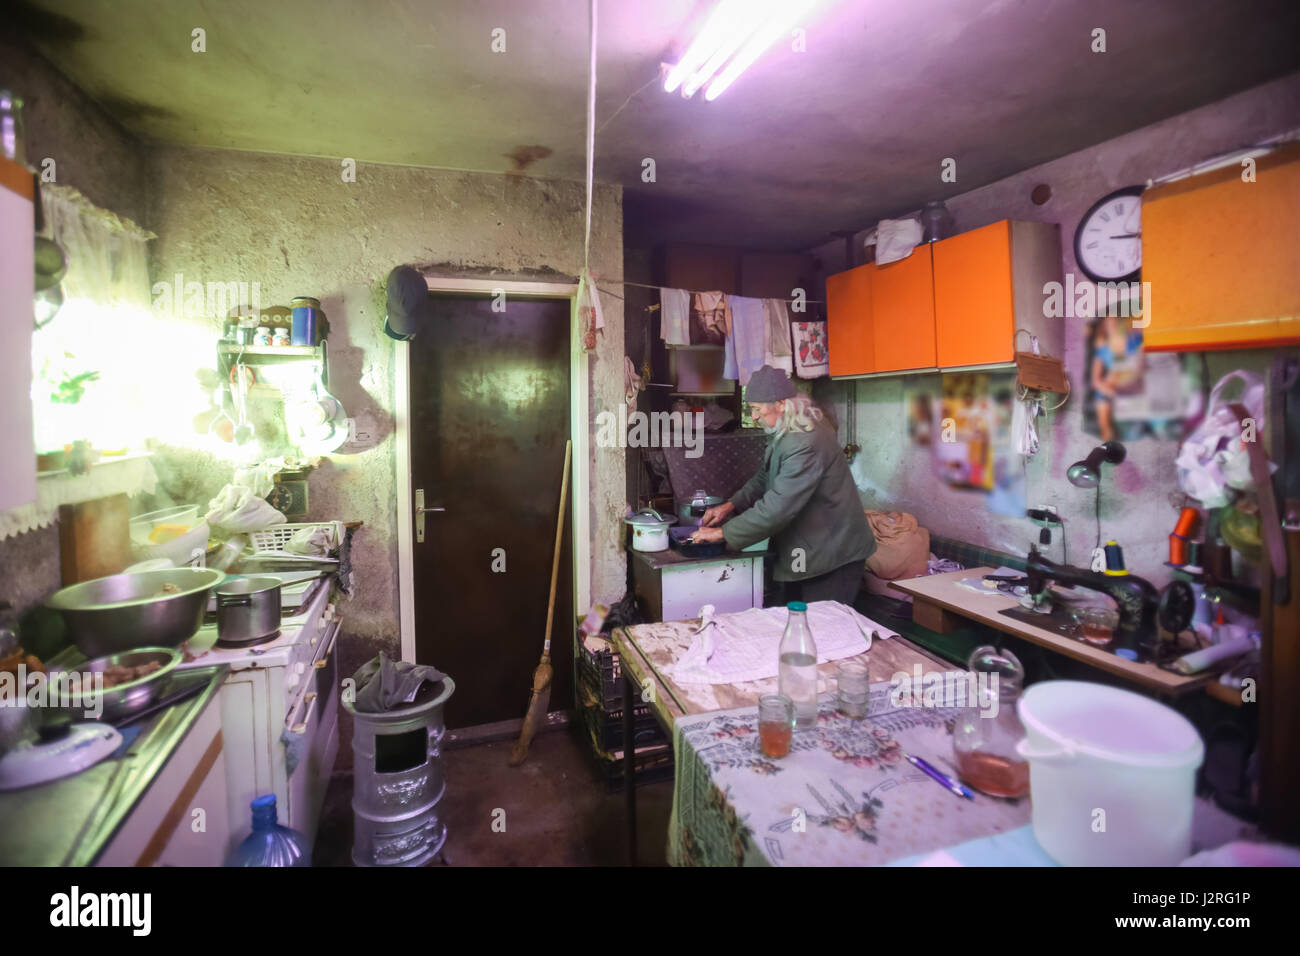 An old man cooking on the stove in an obsolete rustic kitchen. - Stock Image